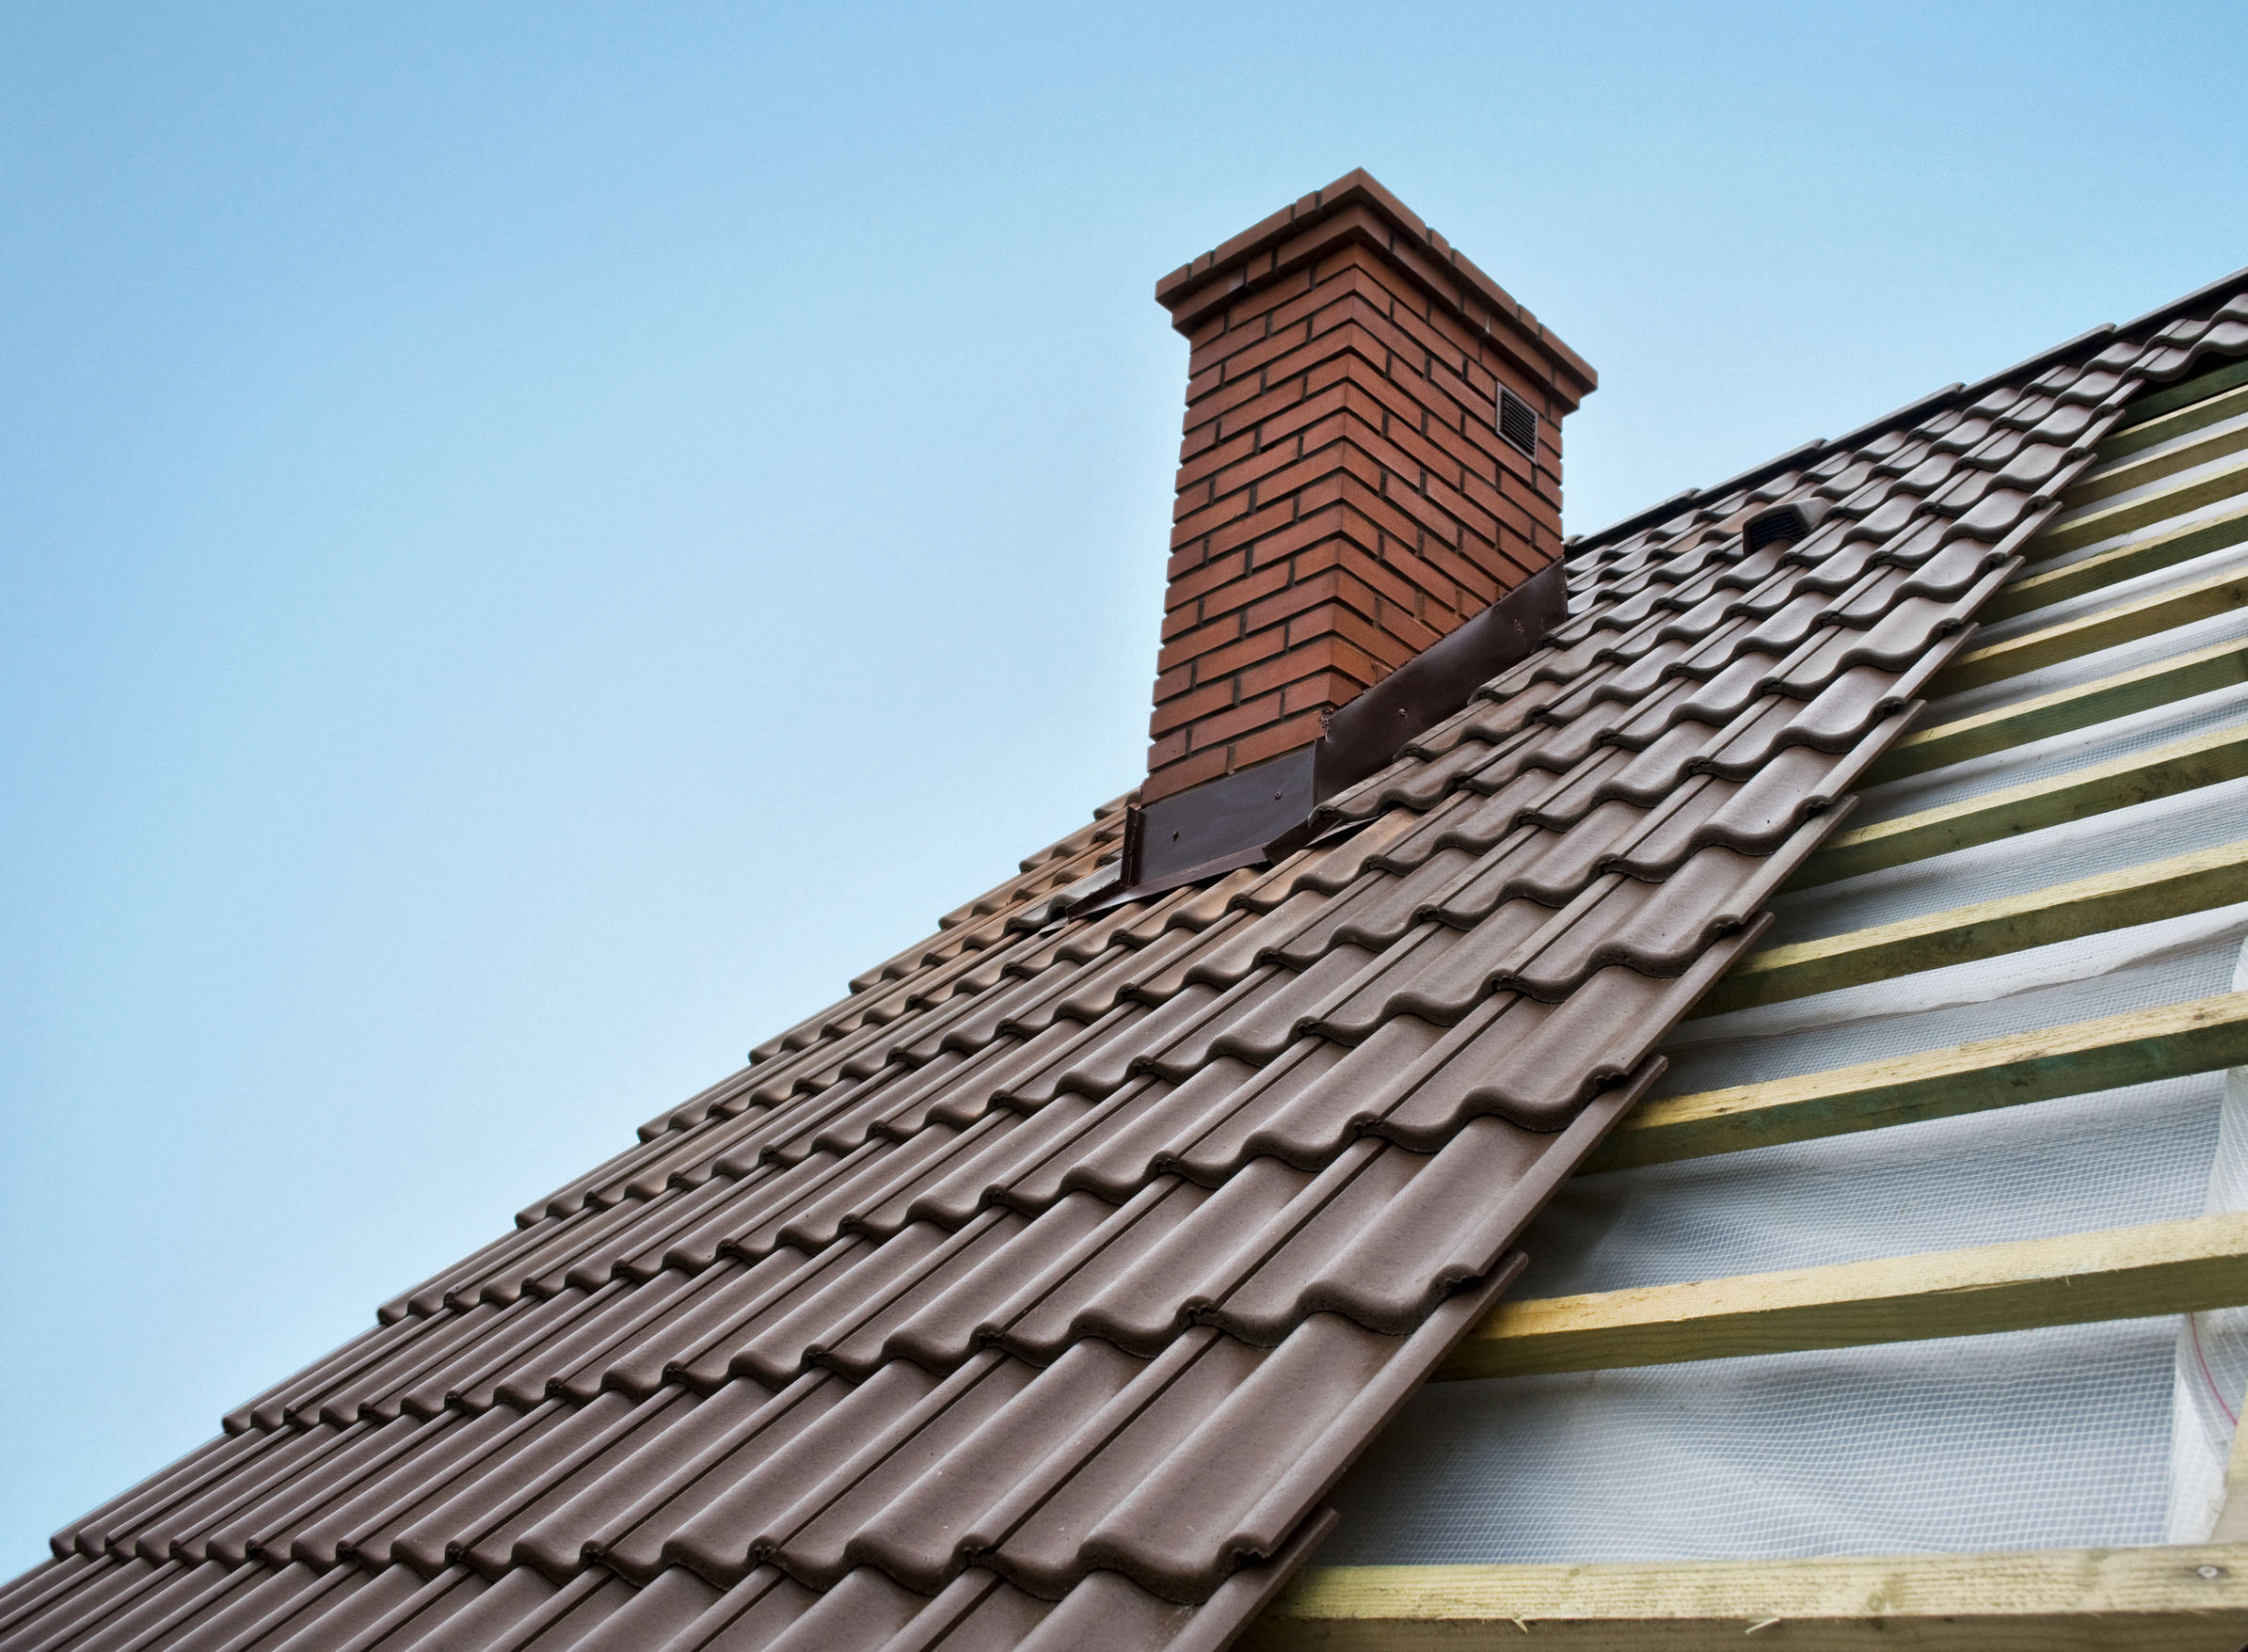 hallandale beach roofing